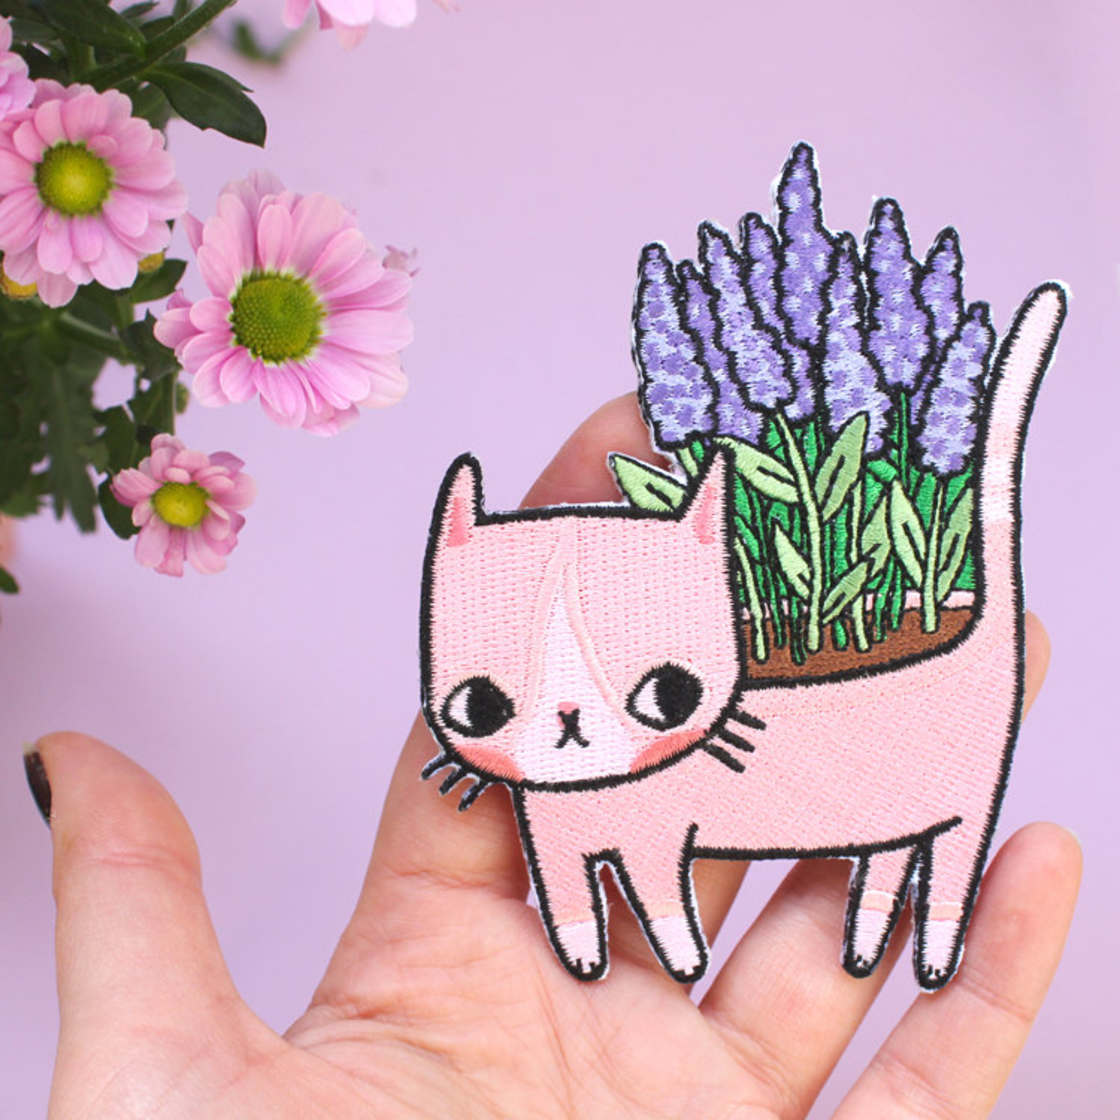 The adorable pins by Pony People